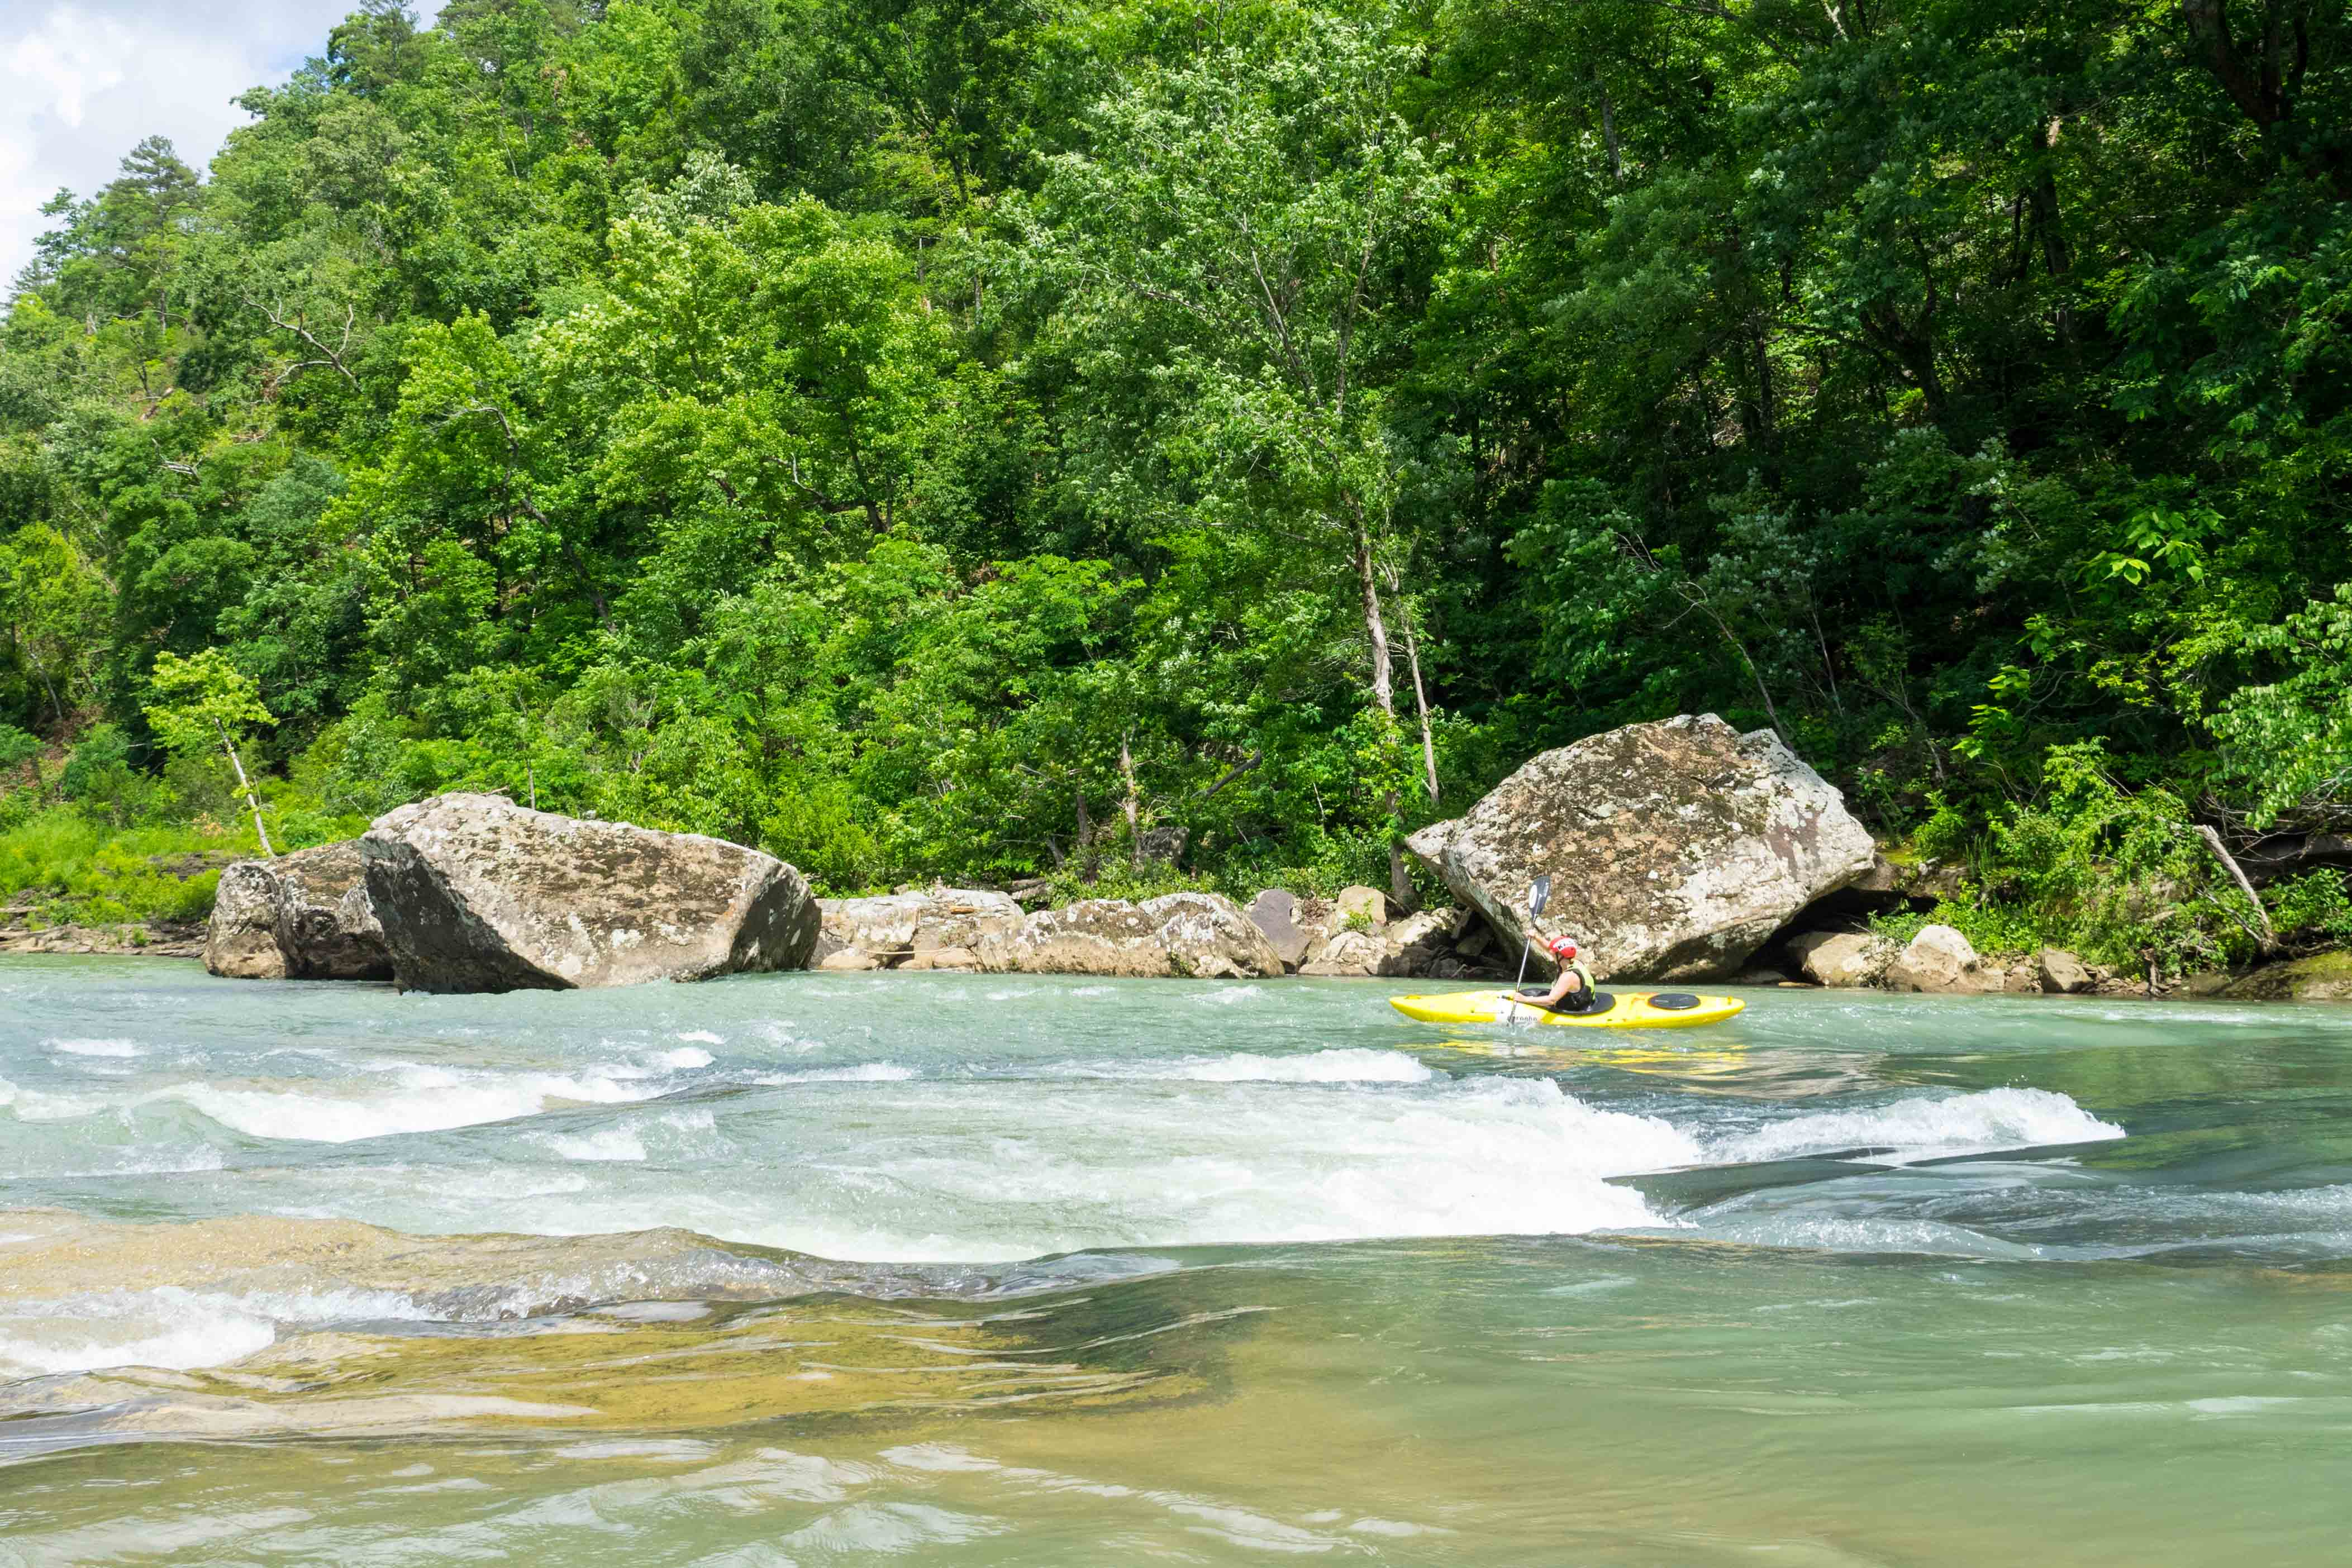 Weekend Expeditions: Small Detour Means Big Fun at Big Piney Creek in Arkansas